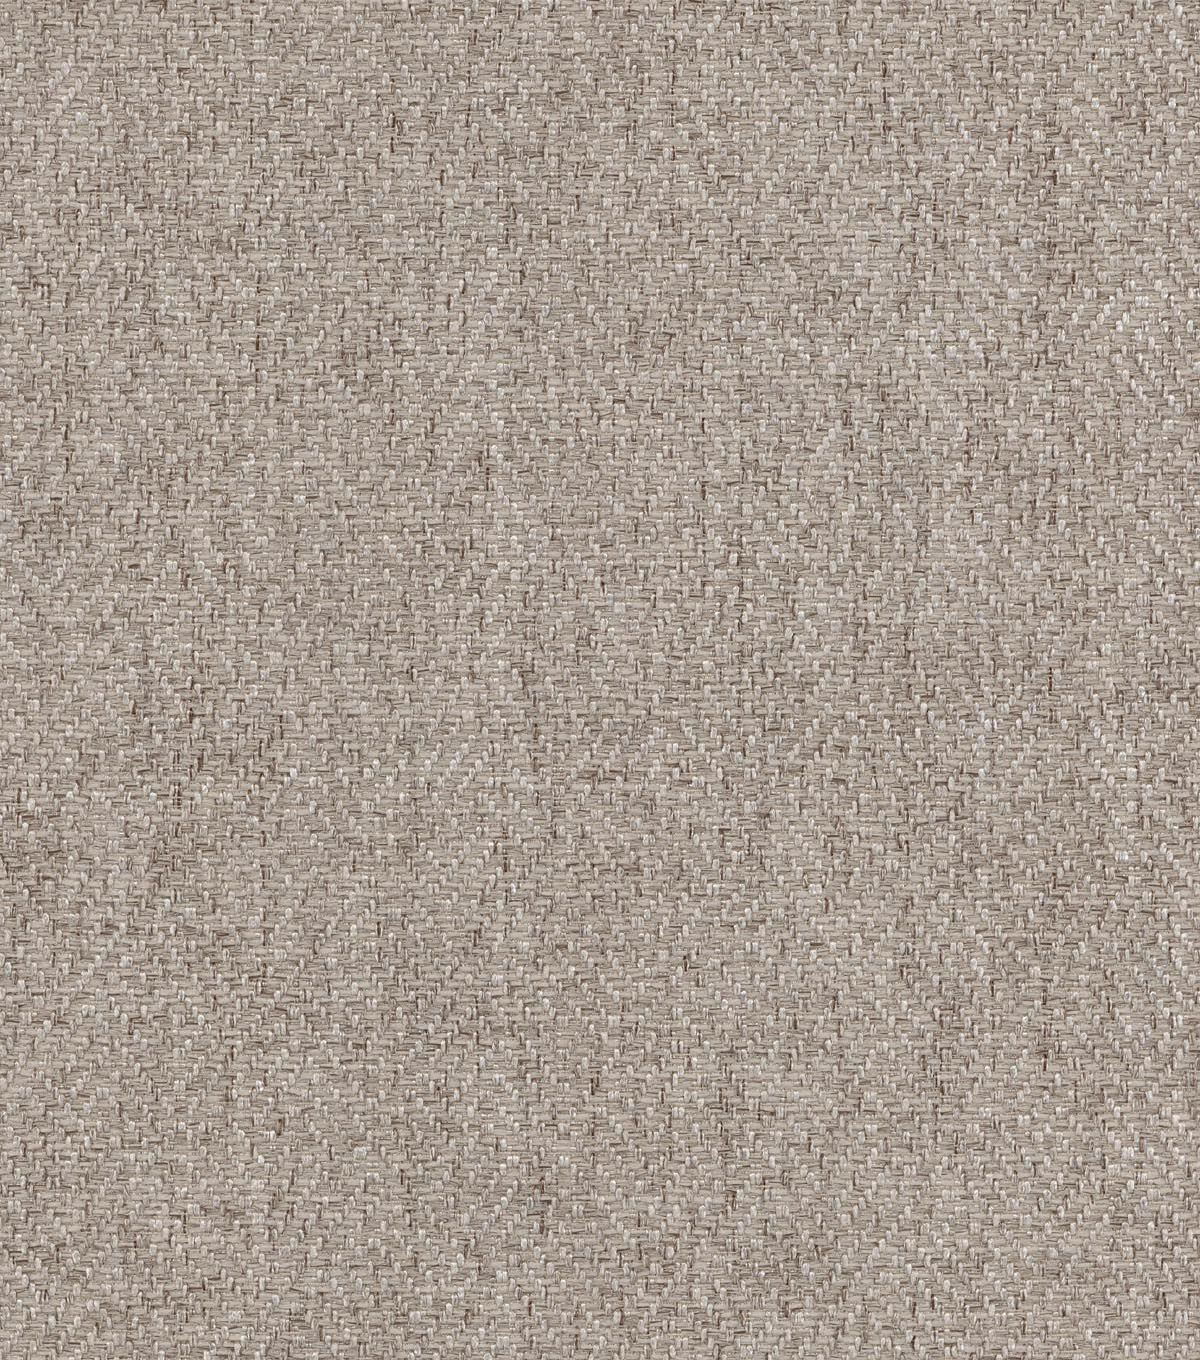 P/K Lifestyles Upholstery Fabric-Basketry/Shale